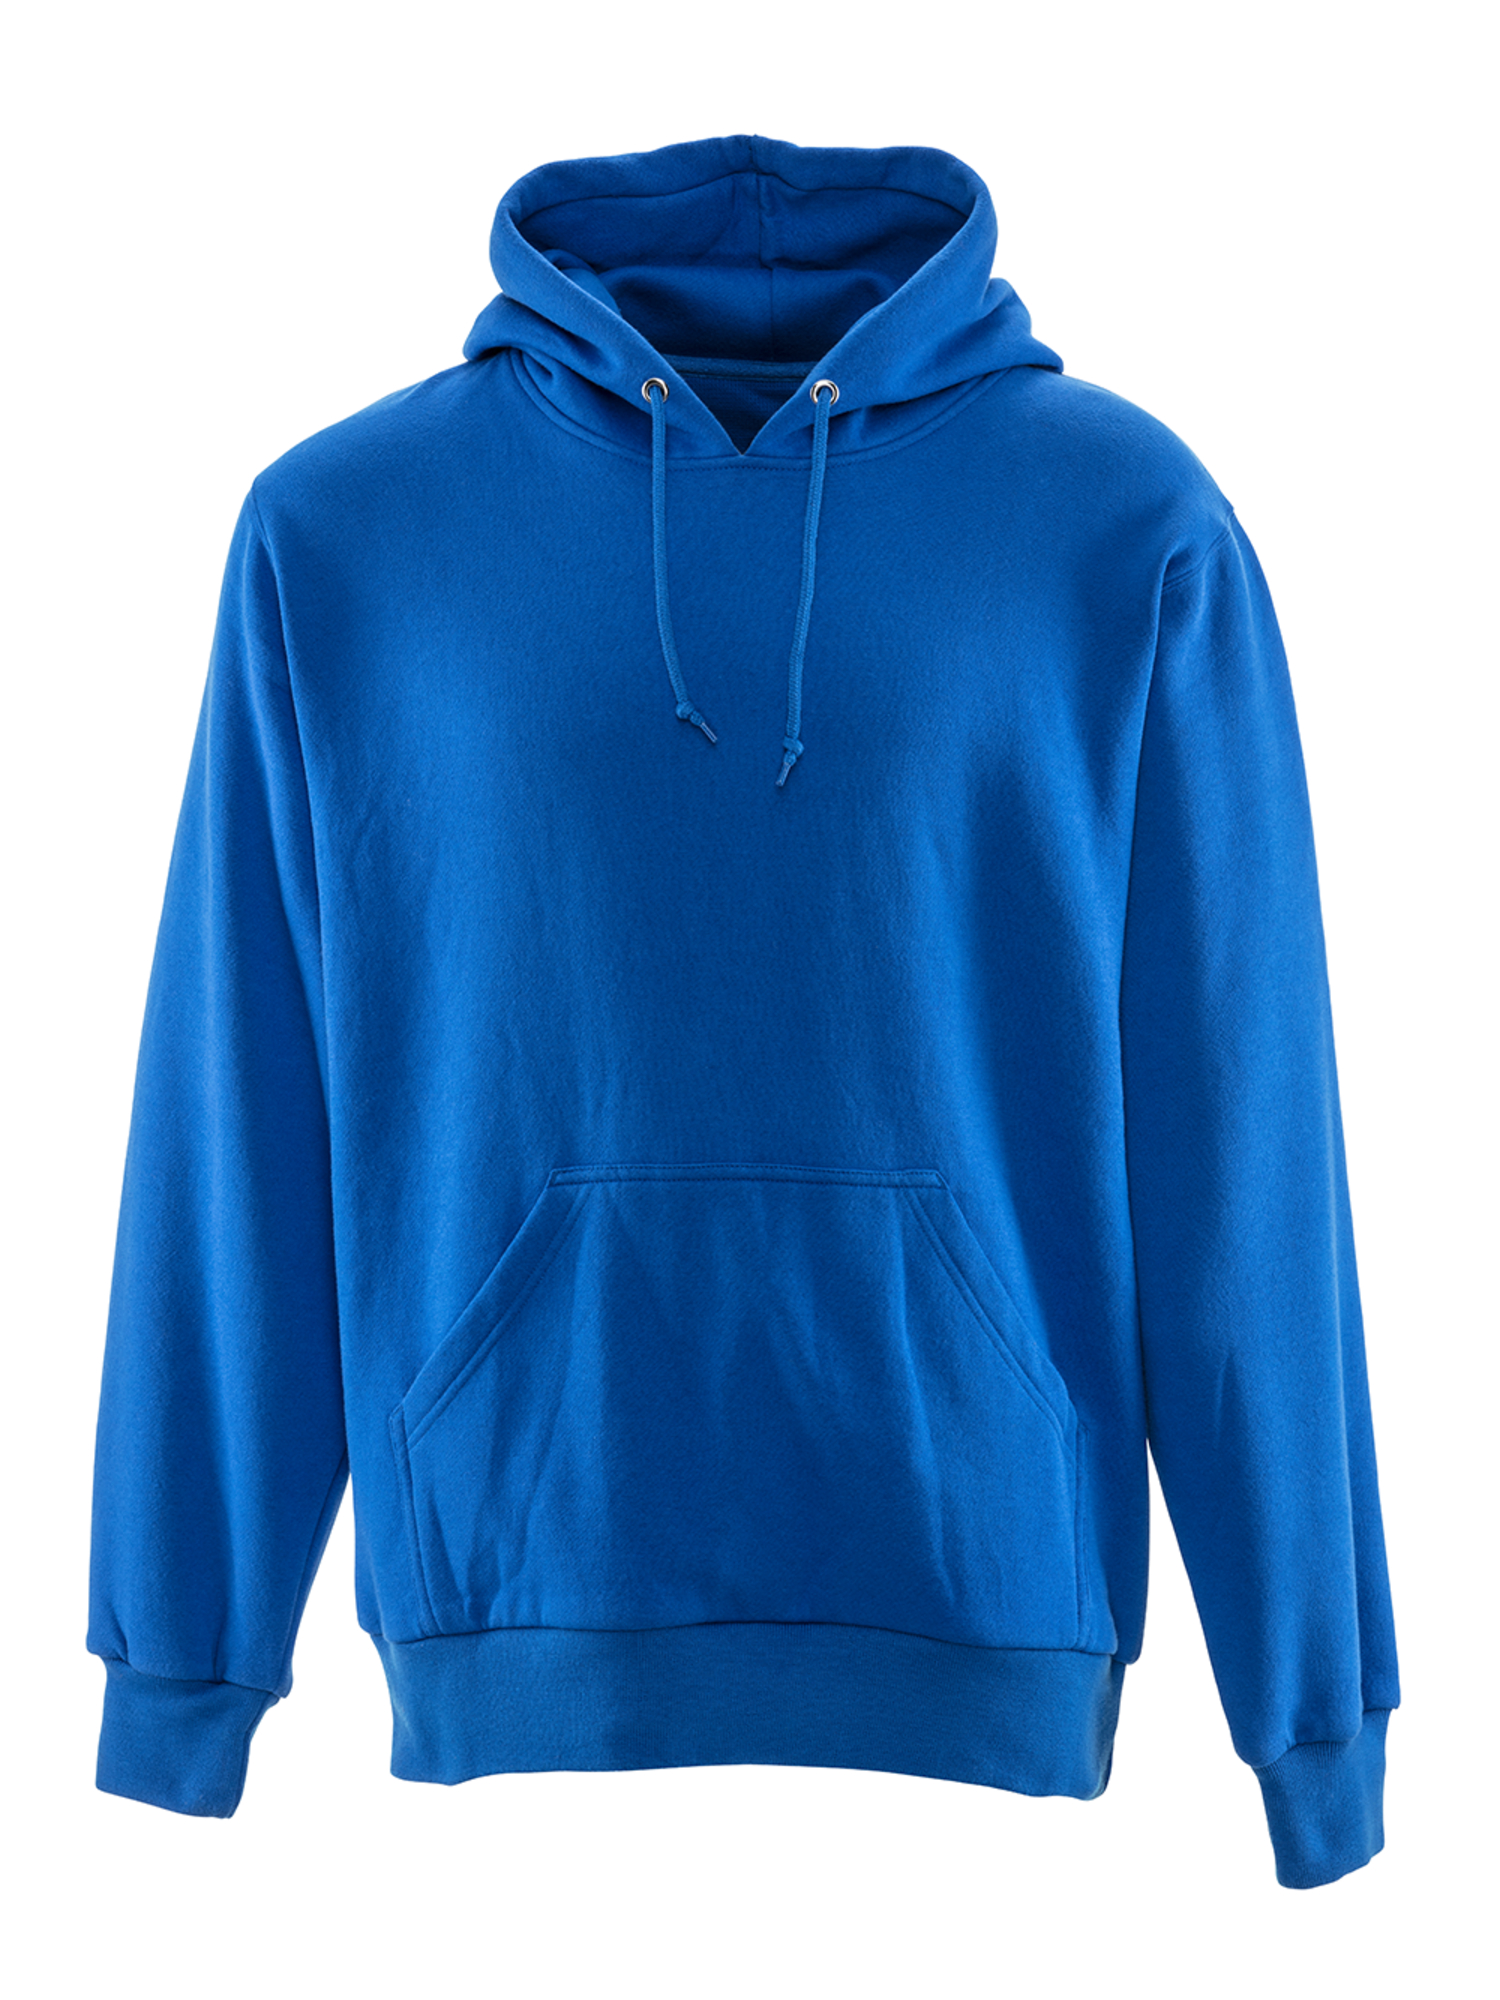 RefrigiWear™ Thermal Lined Hoodie | Royal/Blue | Medium | Regular | Polyester/Fabric/Cotton